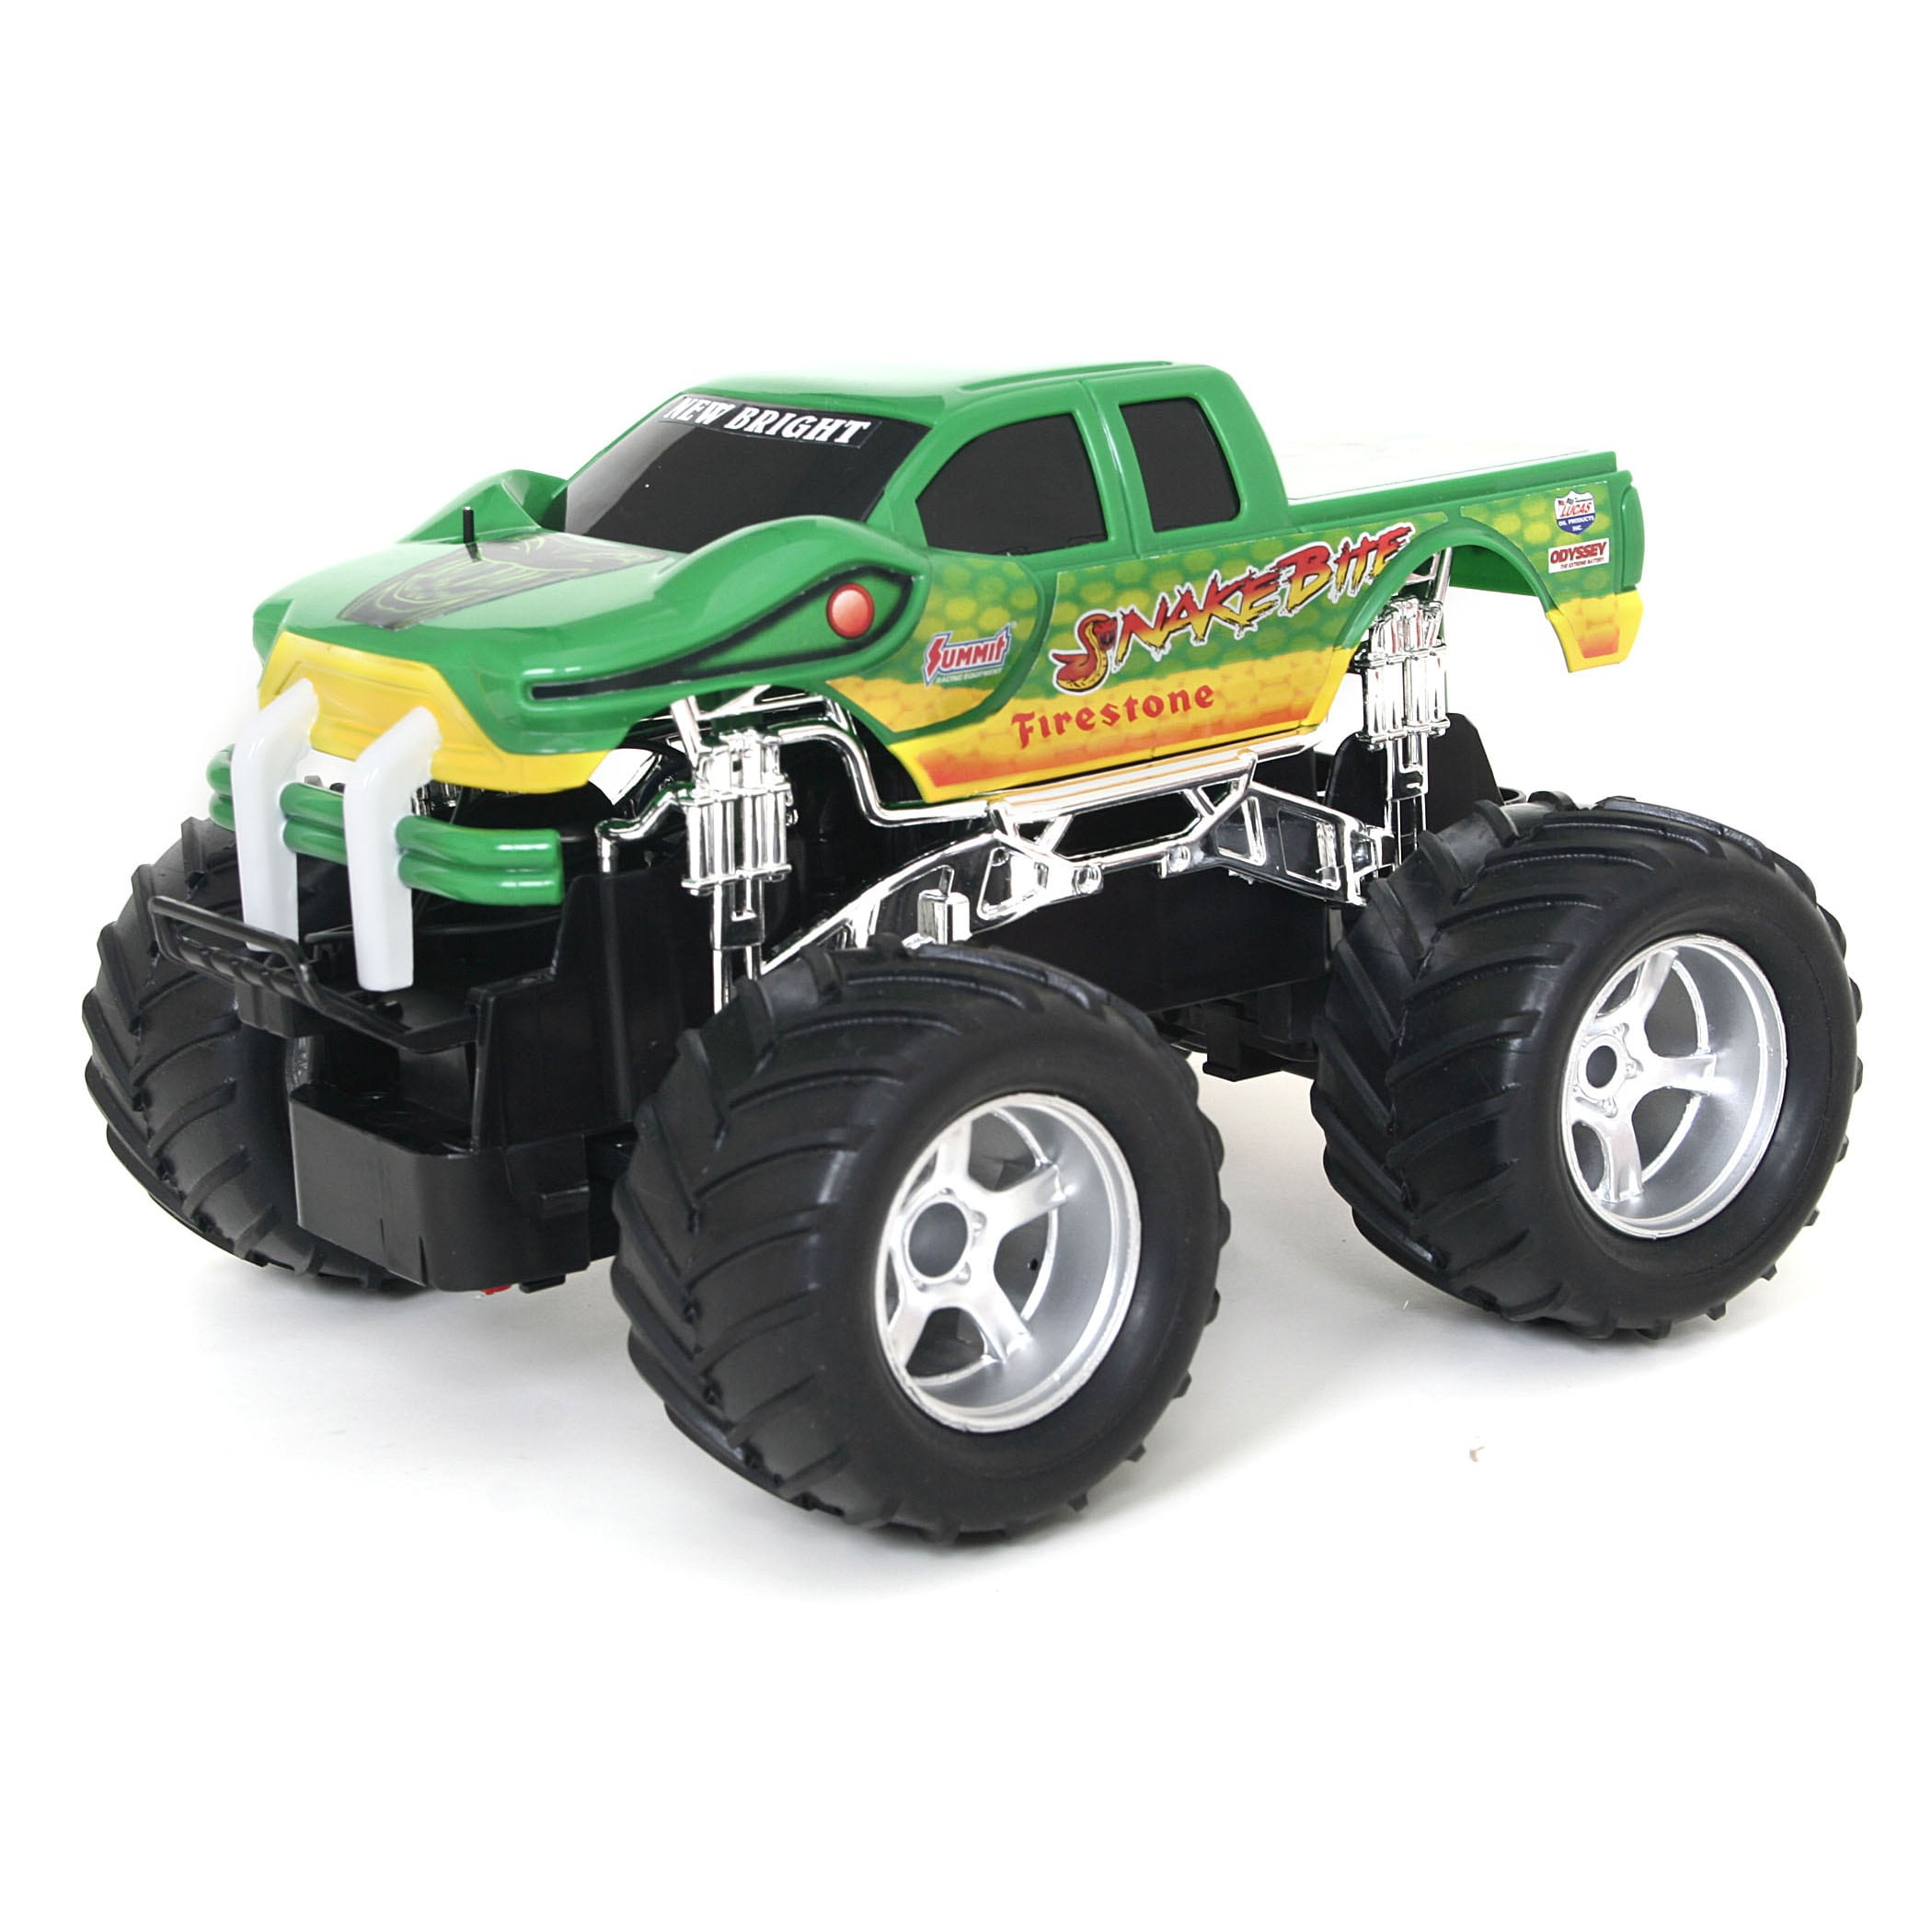 Snake Bite Green R/C Monster Truck - Thumbnail 0